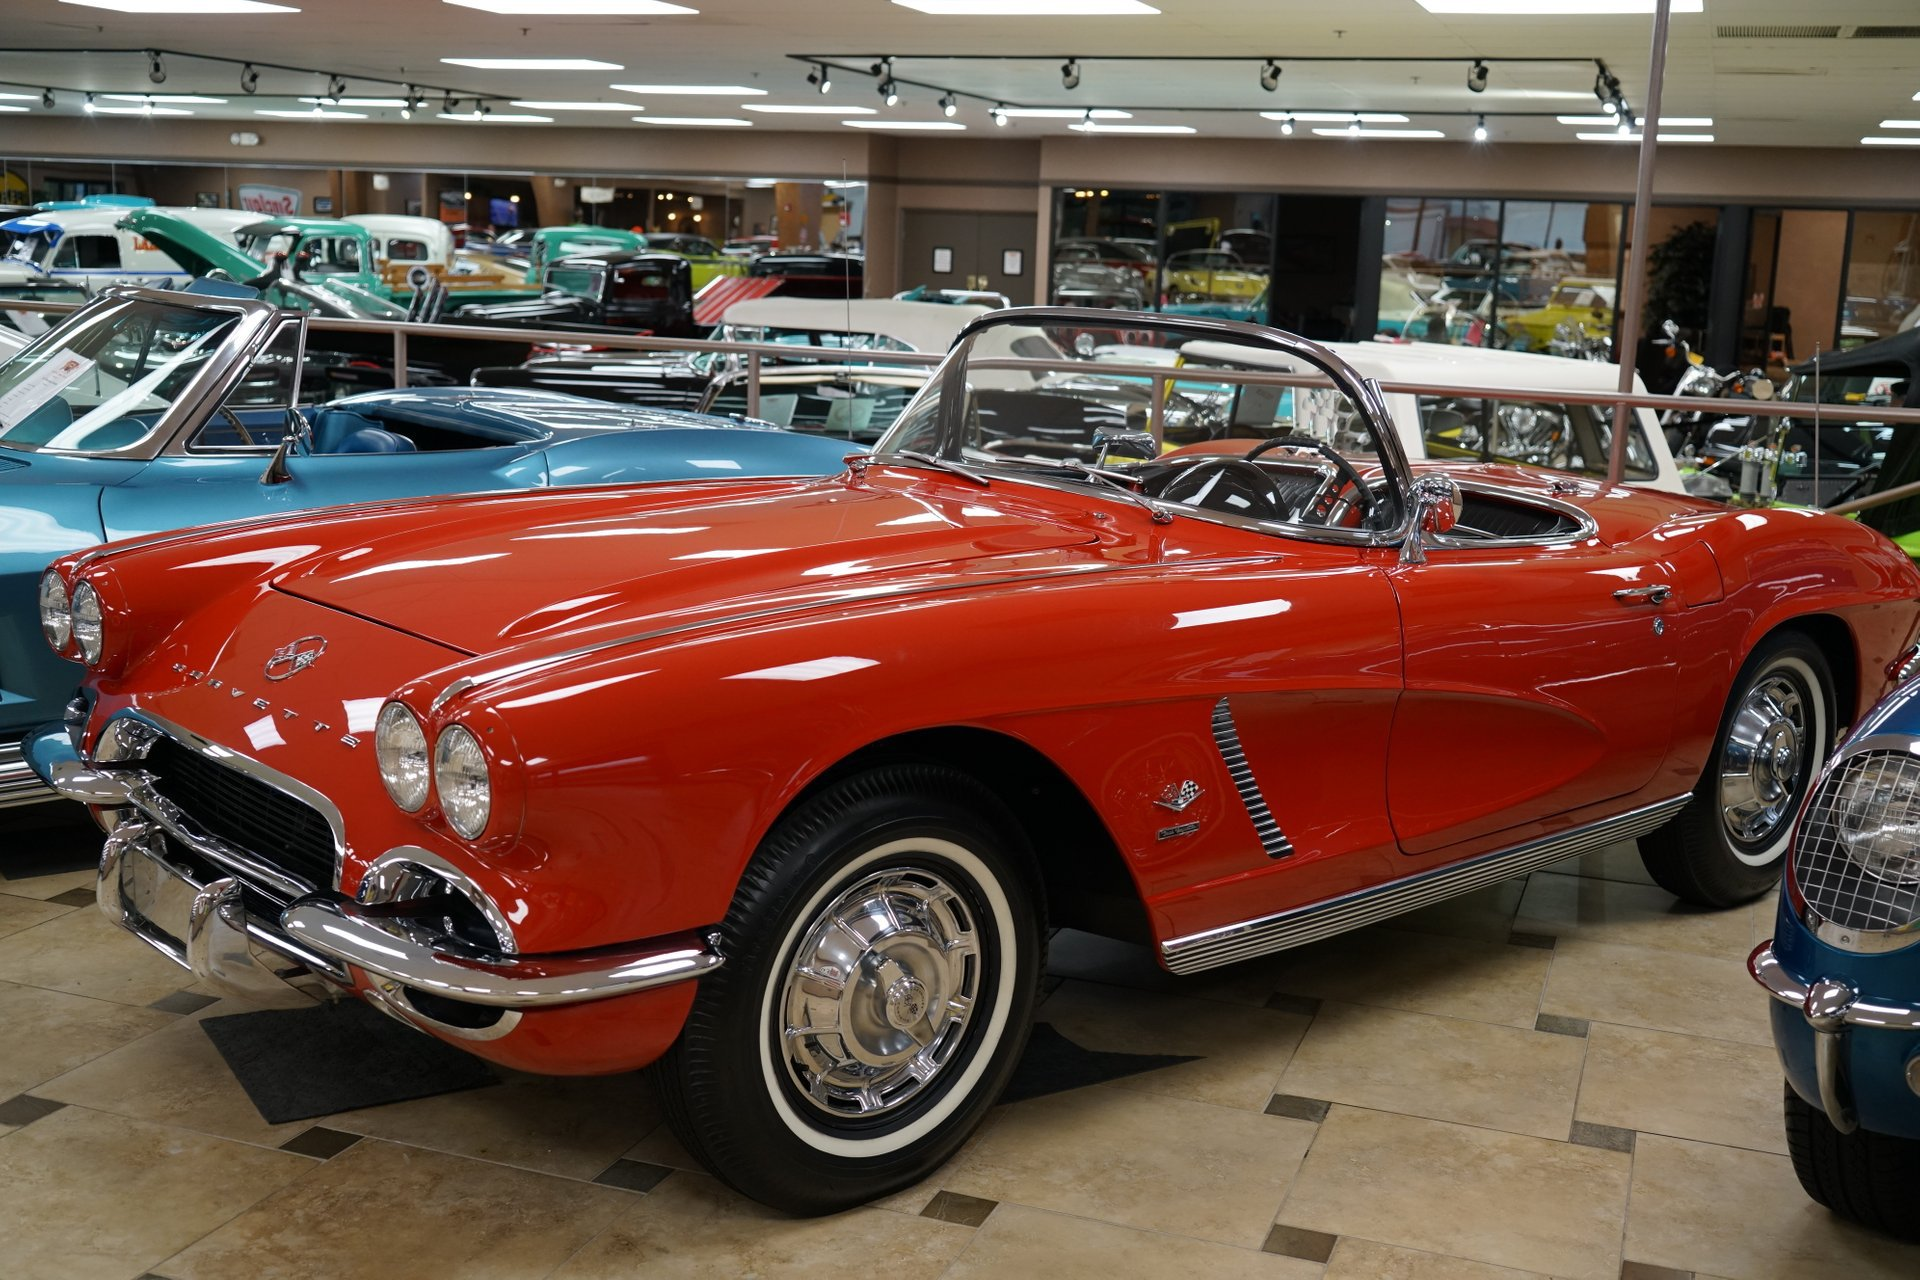 1962 Chevrolet Corvette Ideal Classic Cars Llc